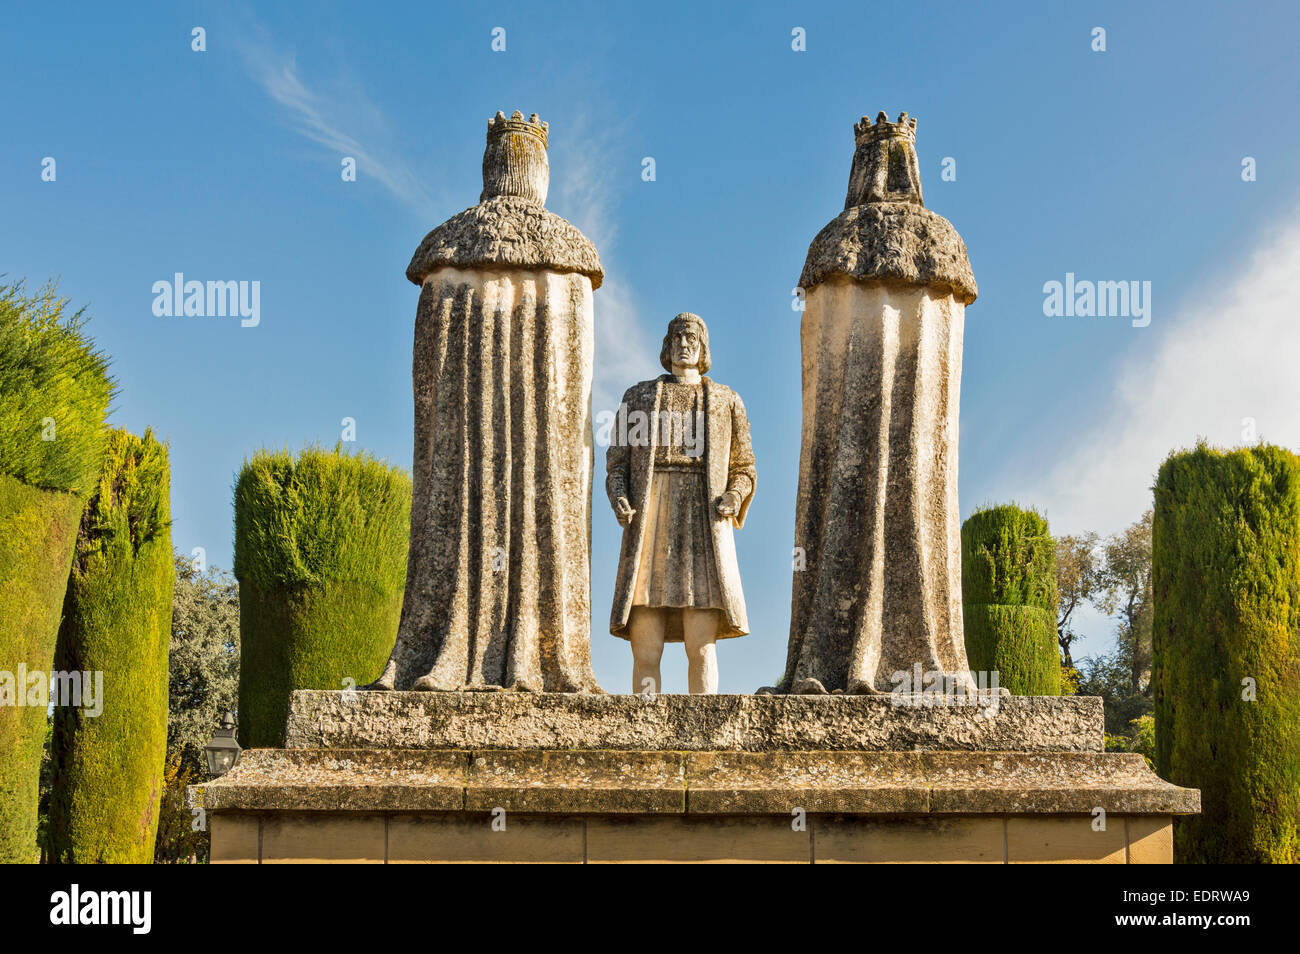 CORDOBA THE GARDEN OF THE ALCAZAR OF THE CHRISTIAN KINGS STATUE OF COLUMBUS AND THE CATHOLIC KINGS - Stock Image